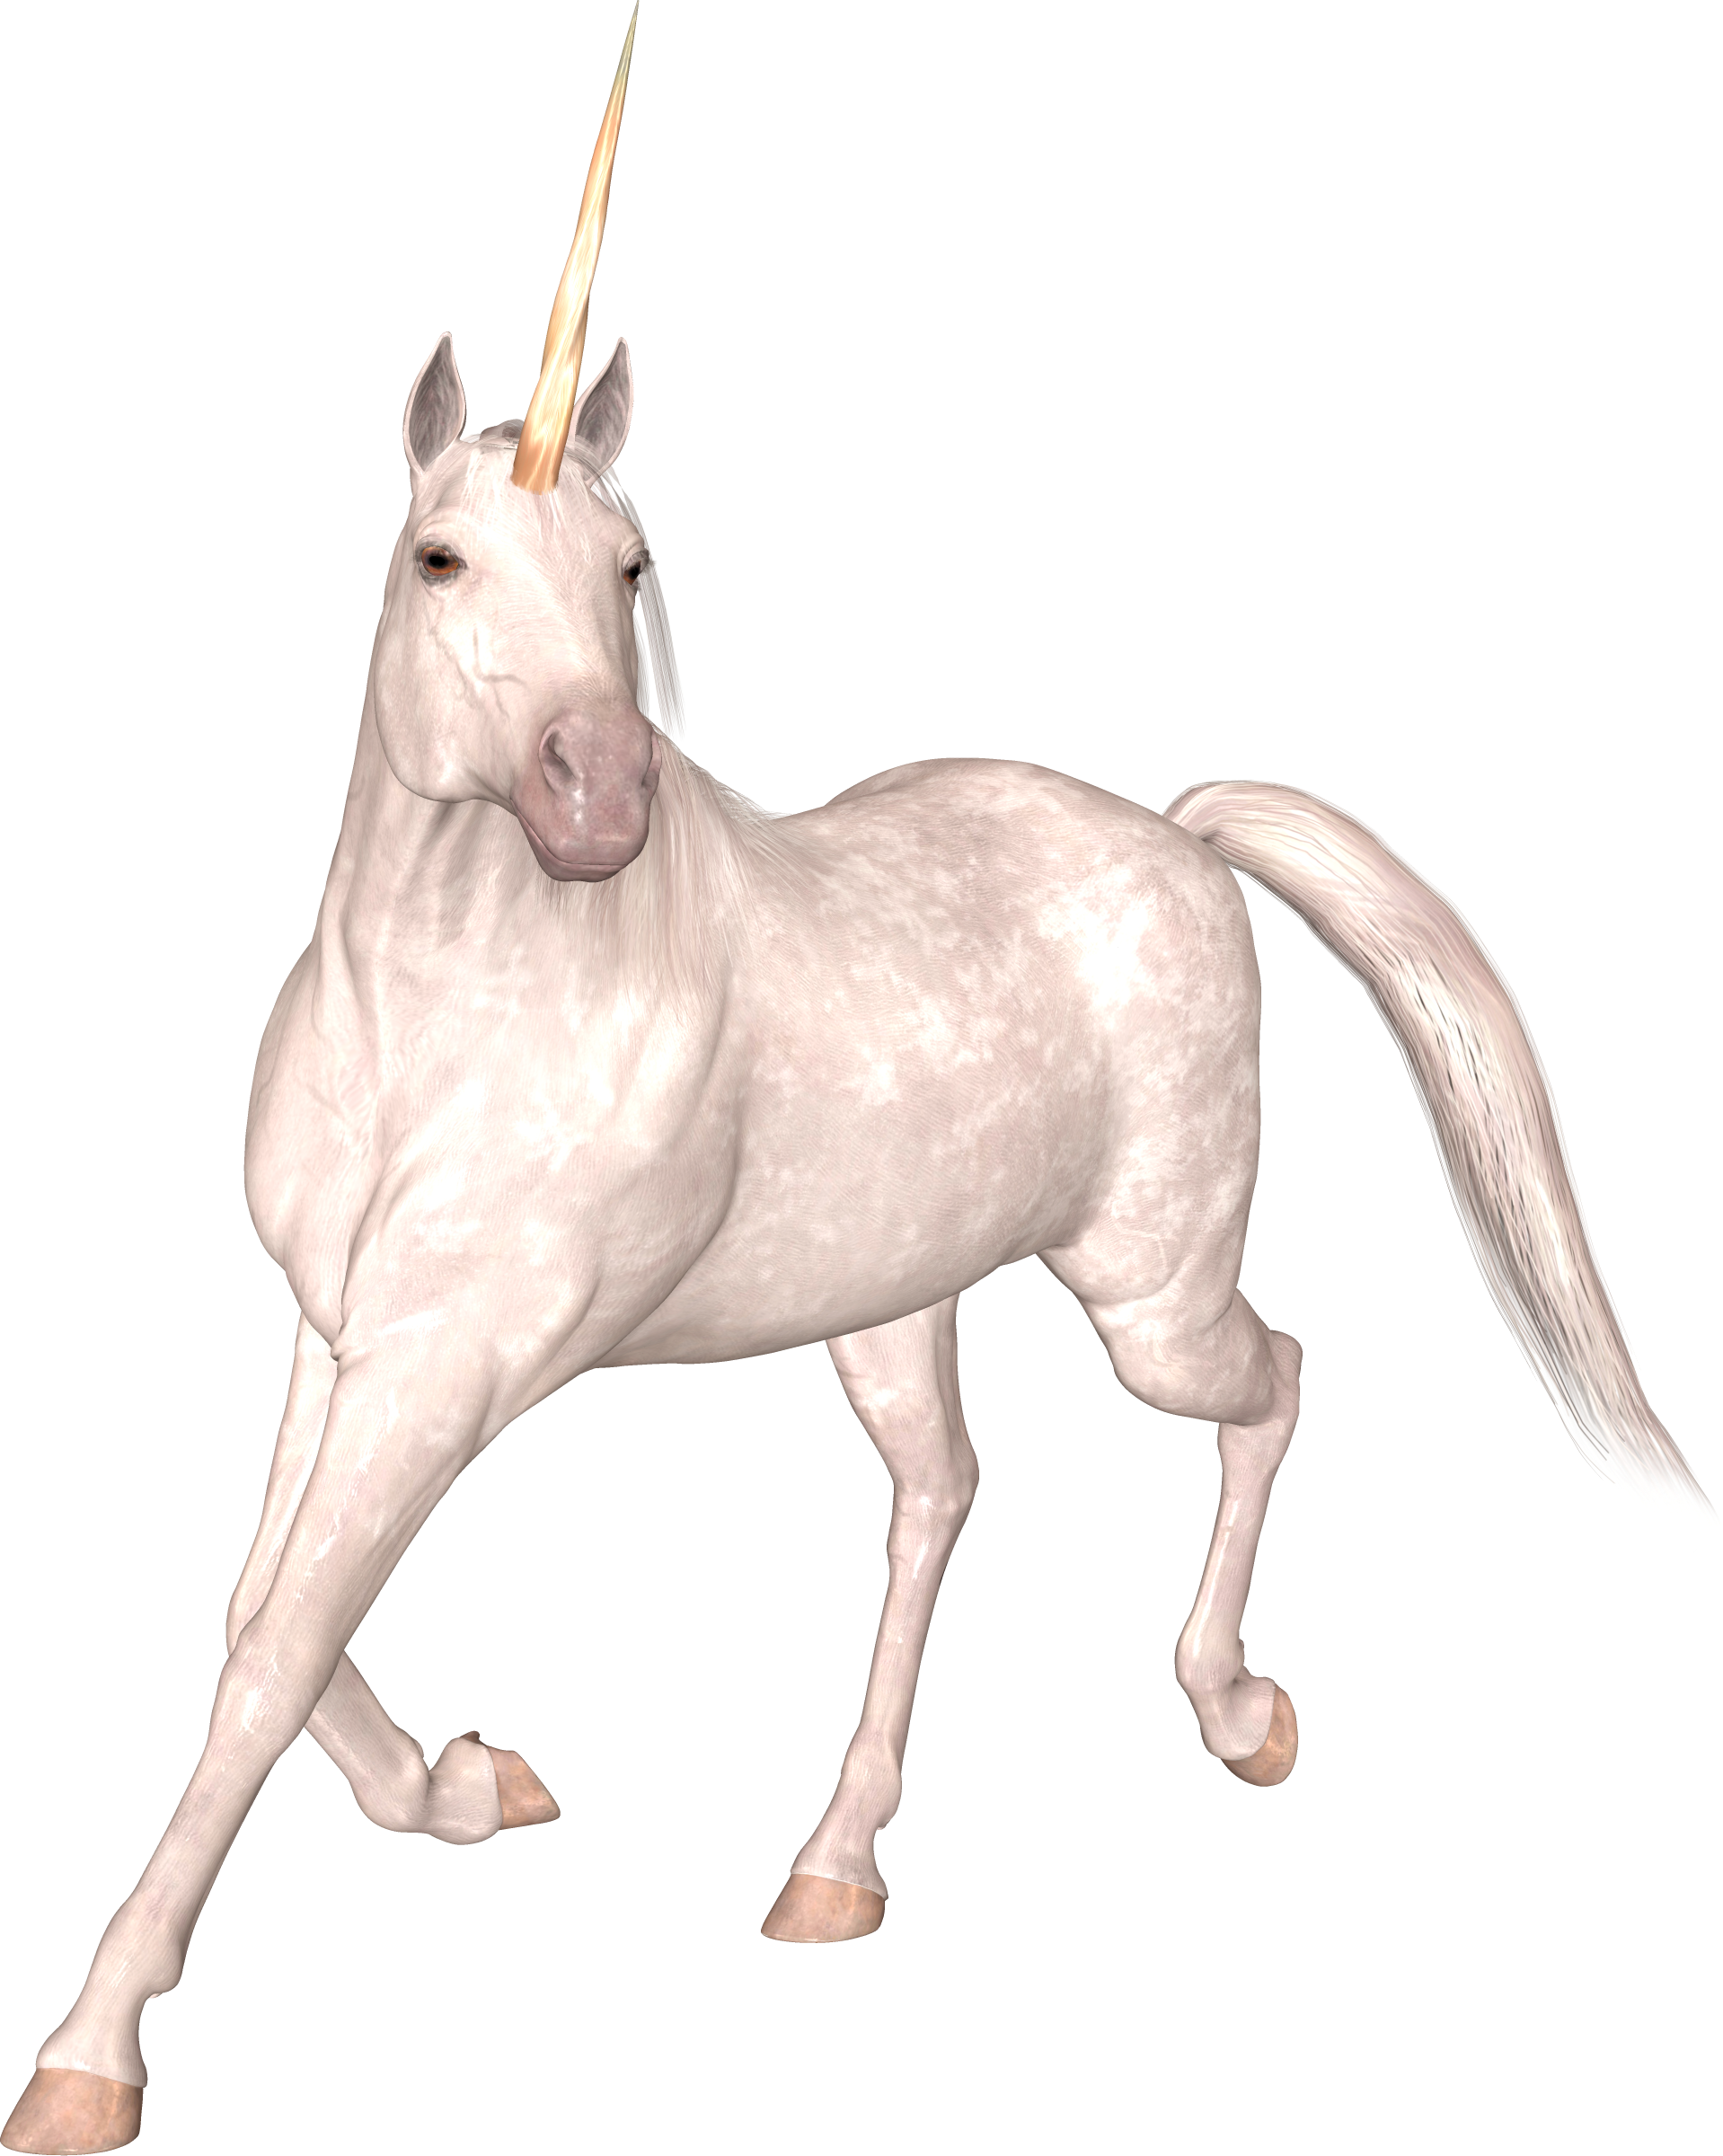 Free download of Unicorn Transparent PNG File